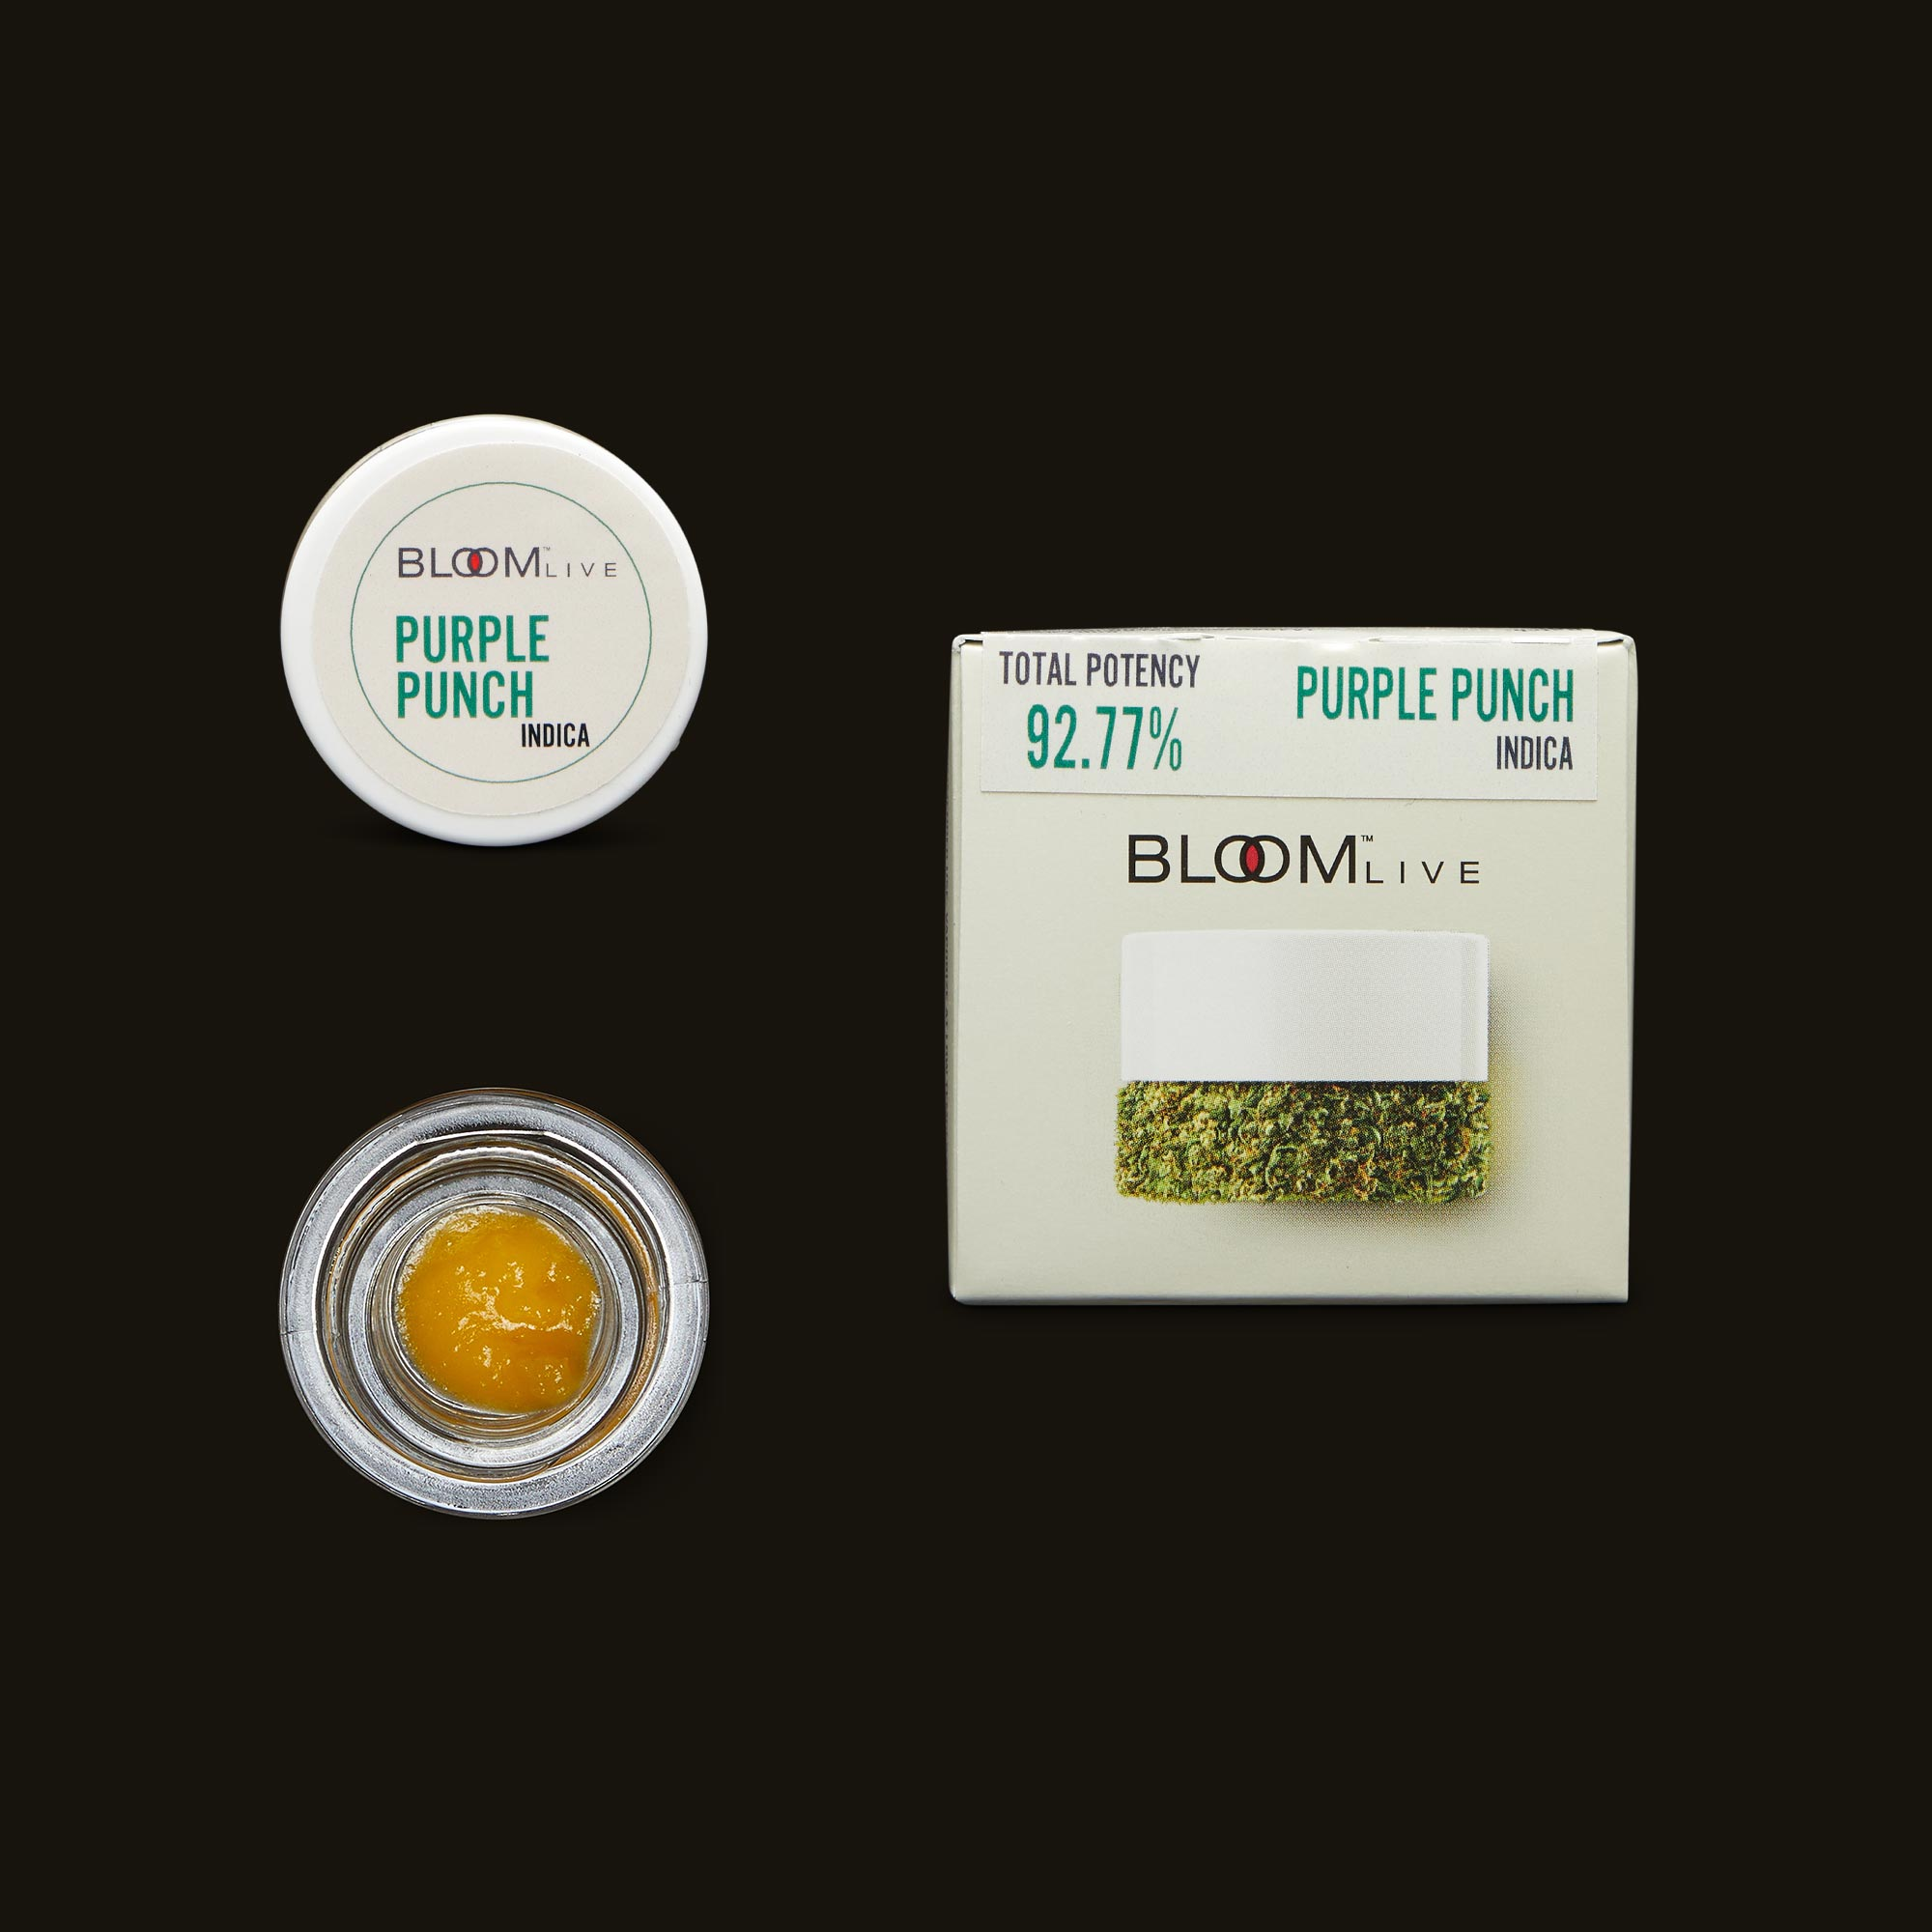 Purple Punch Live Budder by Bloom Brands